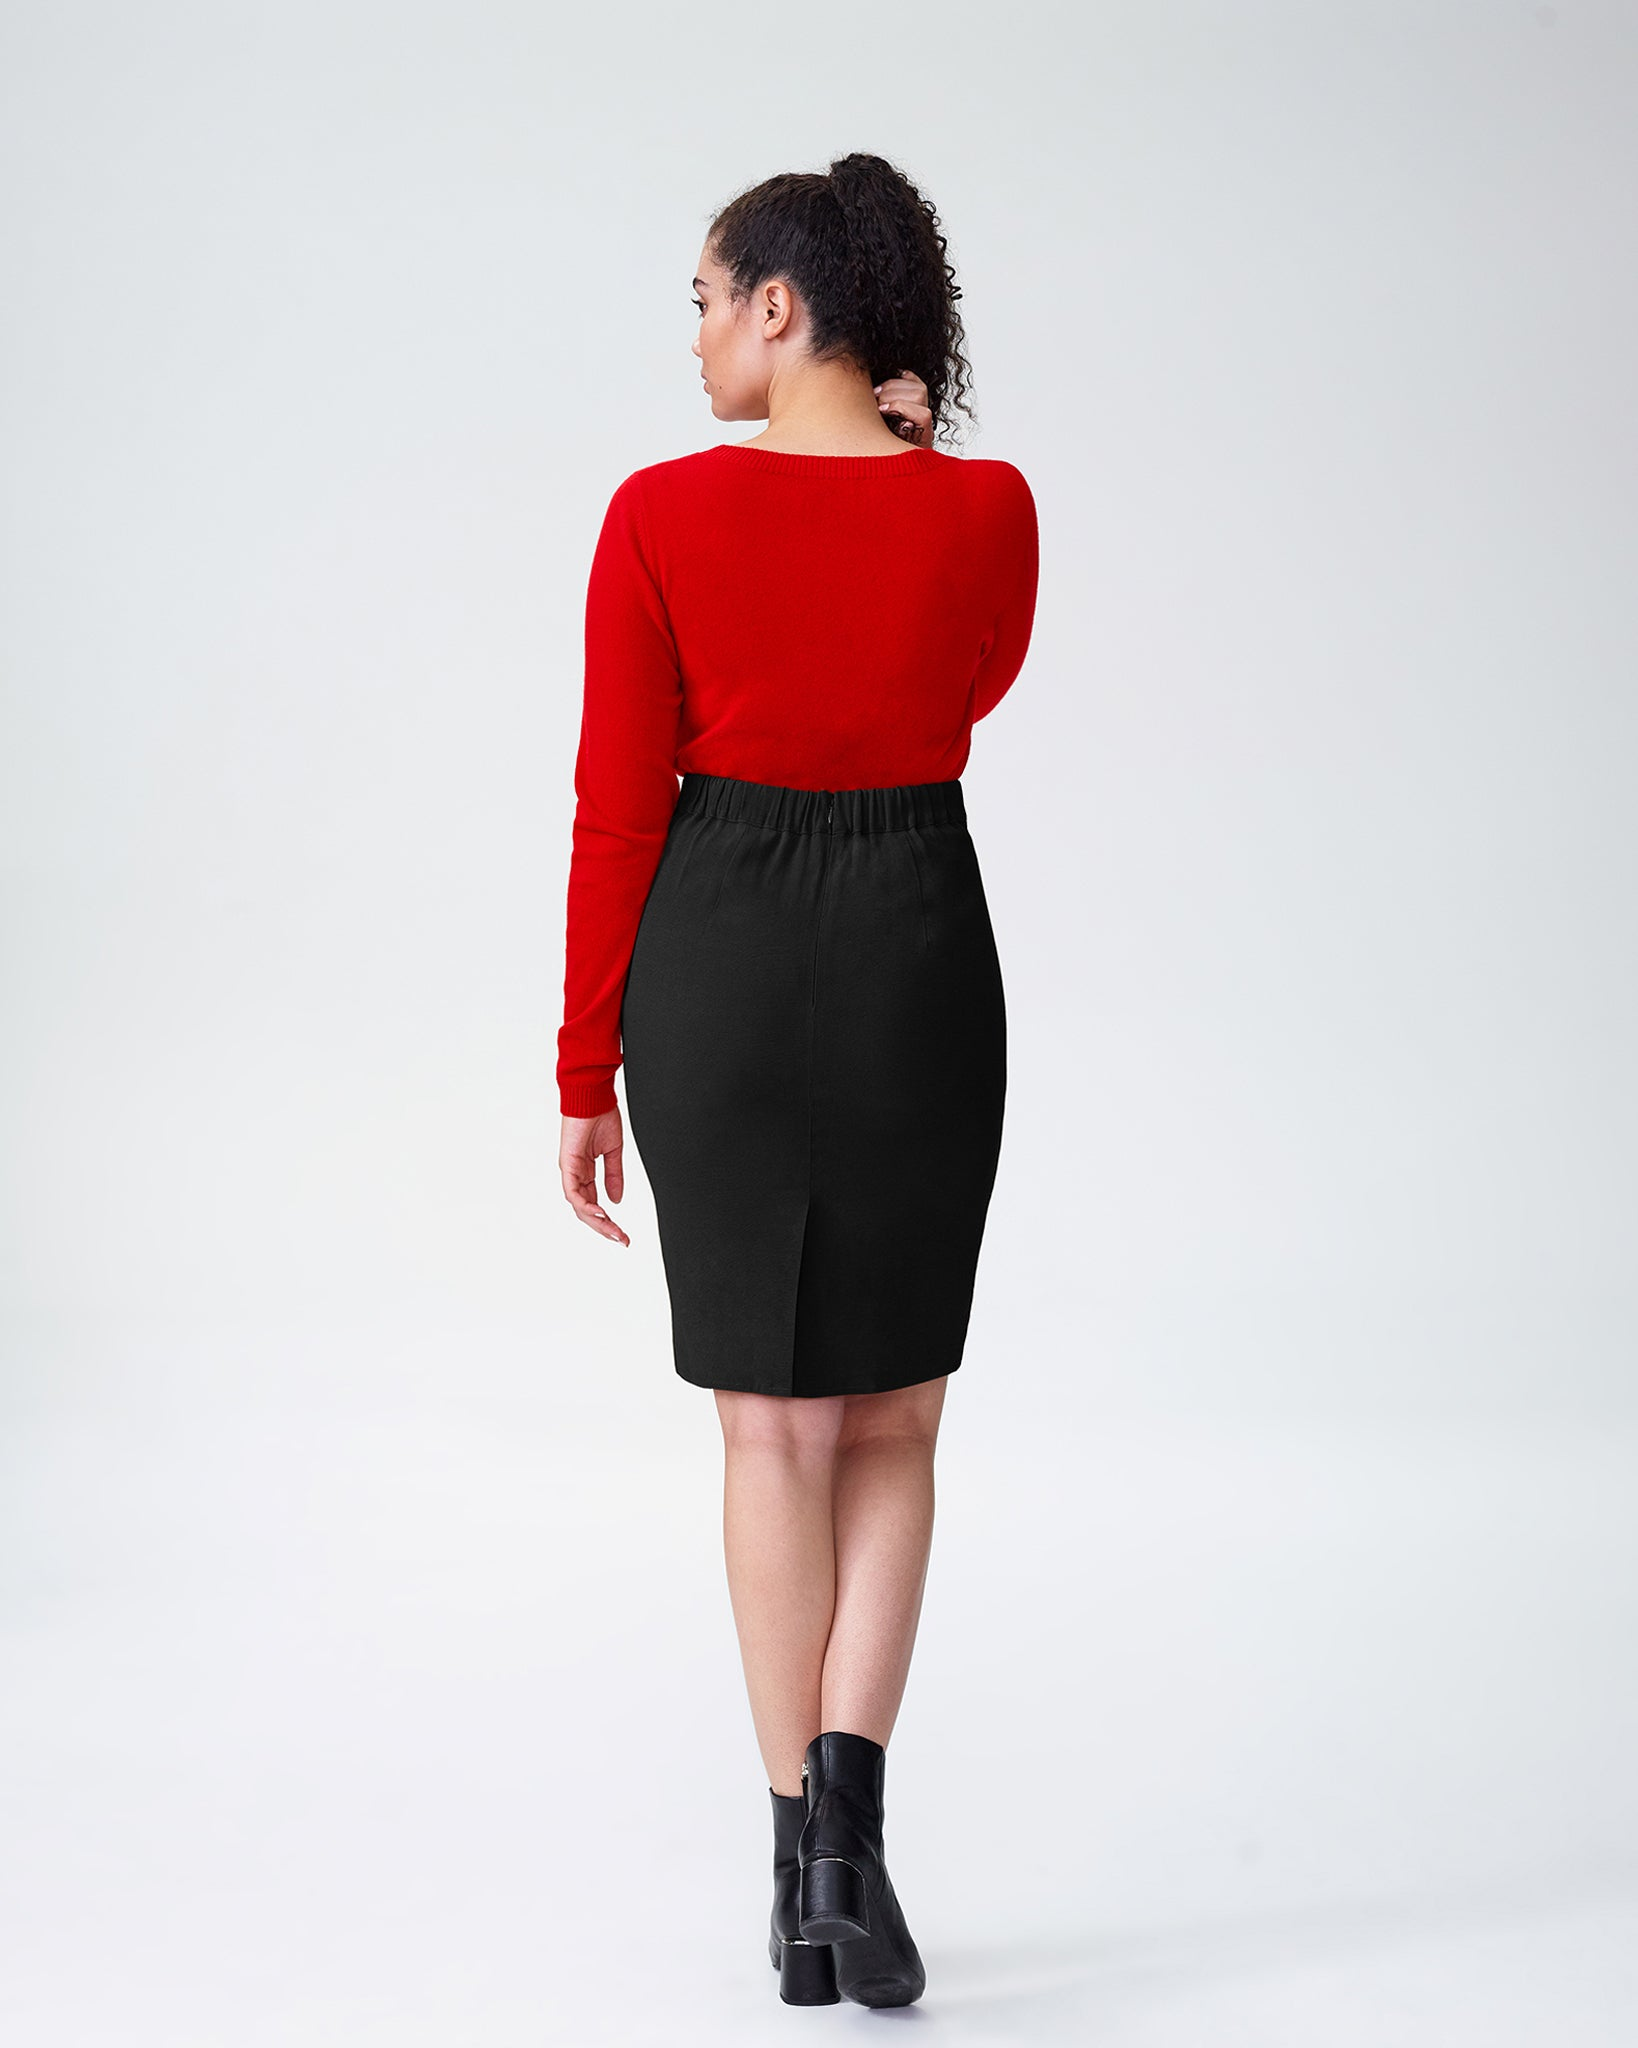 Bing Crepe Skirt - Black